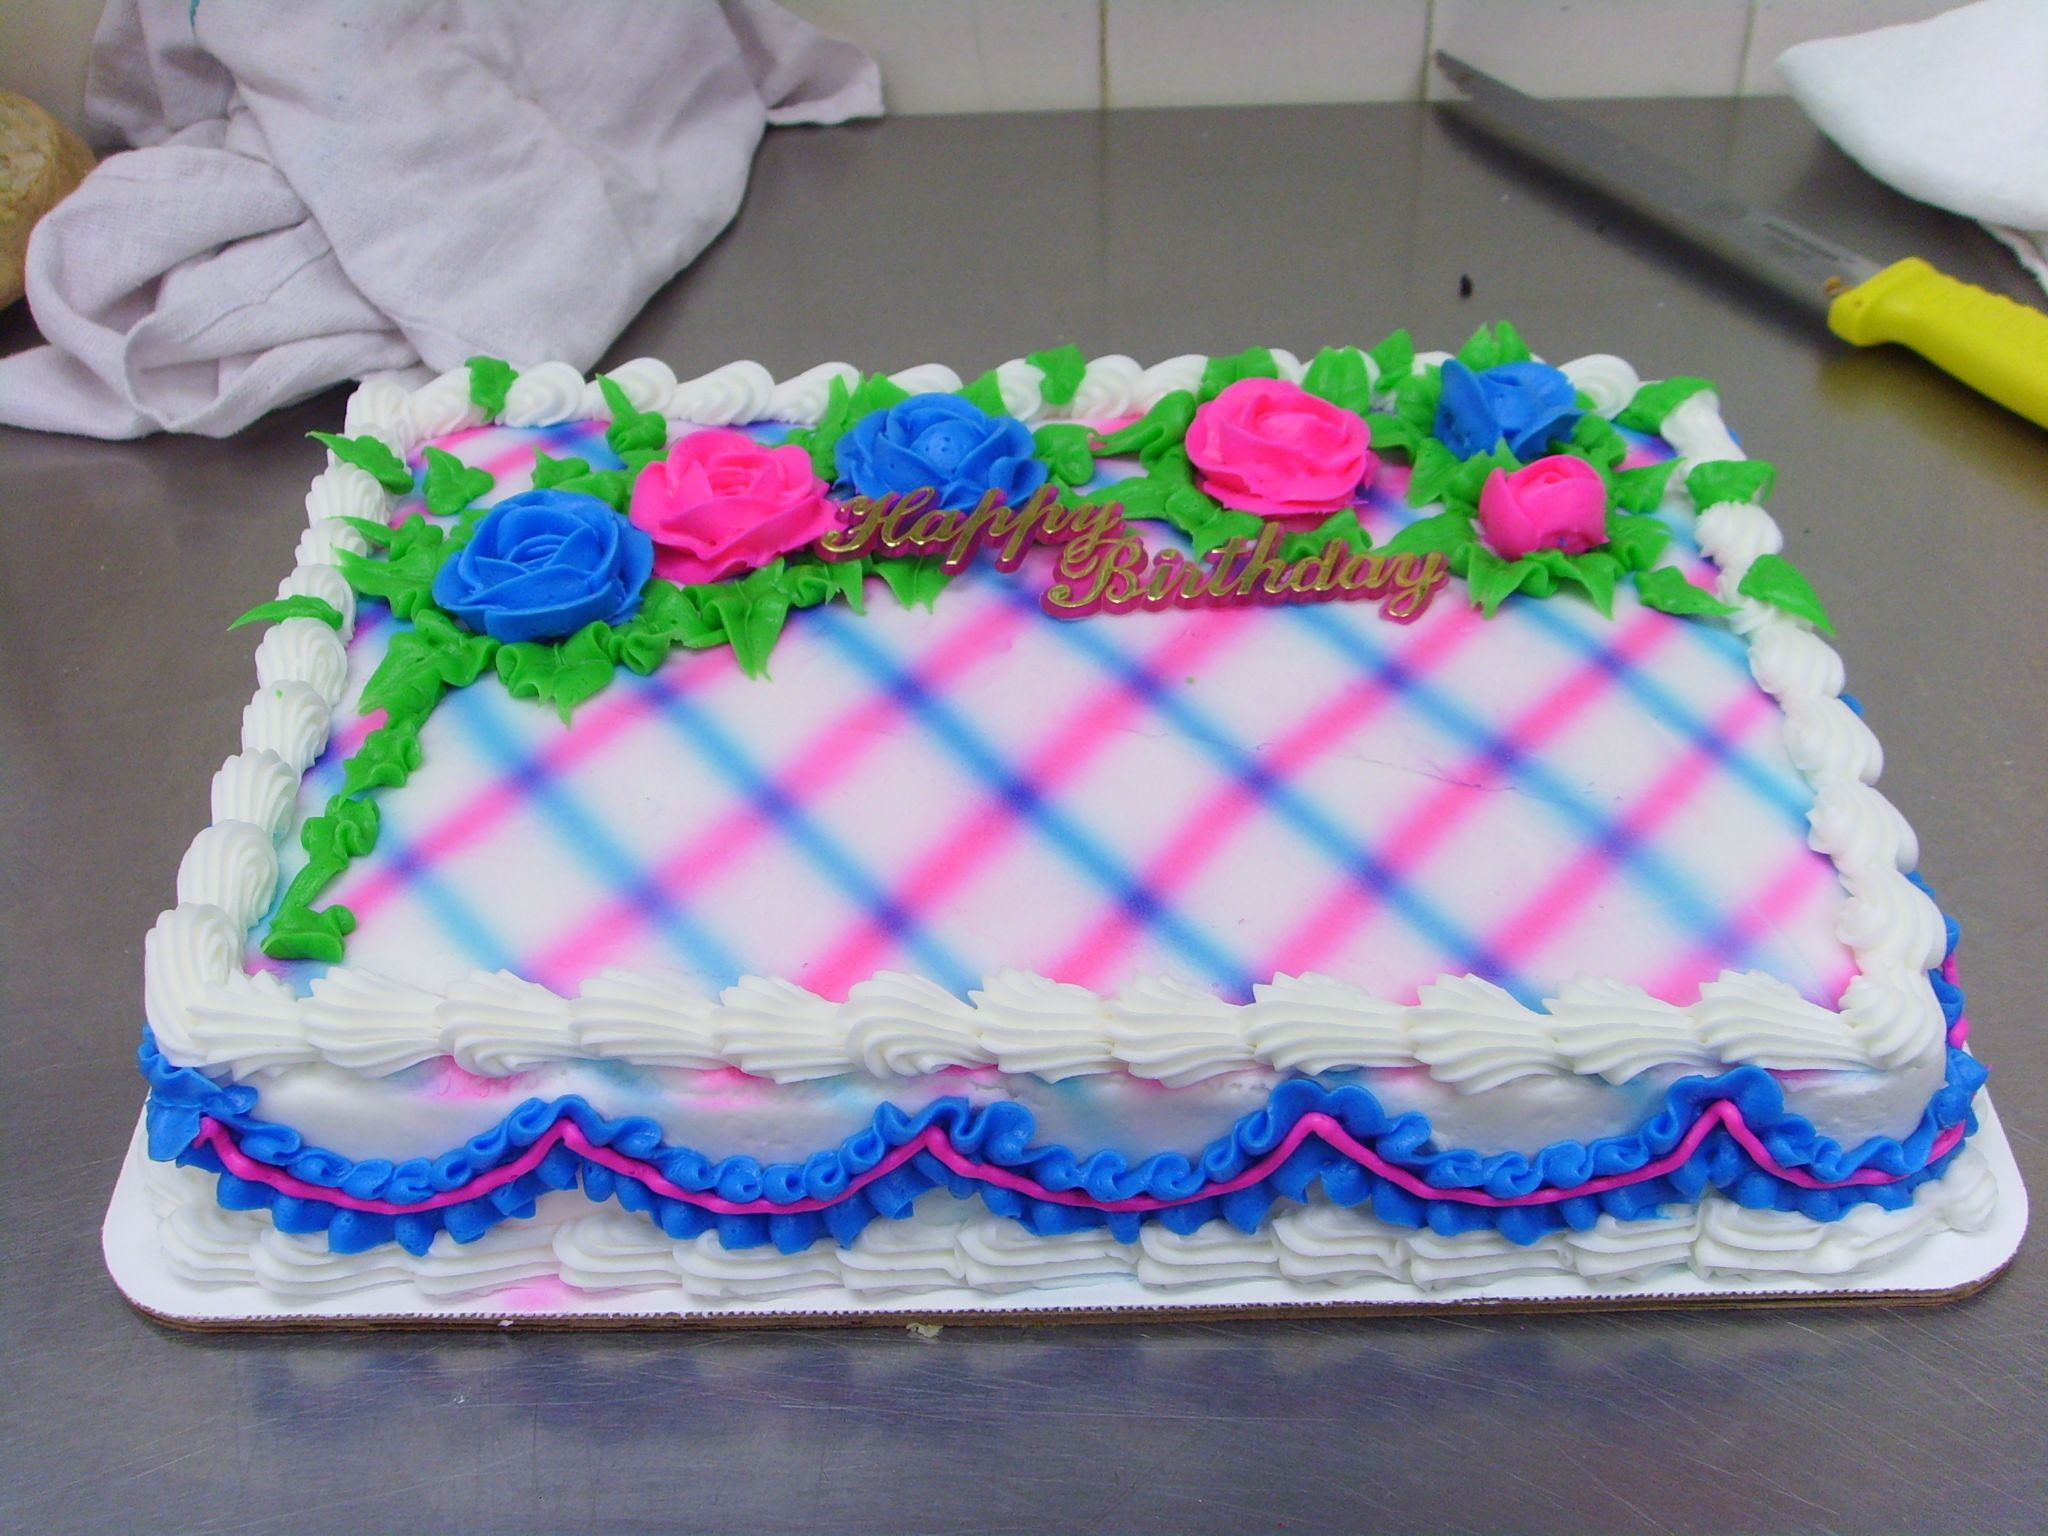 I Made This Cake Today It Is A Quarter Sheet Airbrushed With Hand Piped Roses